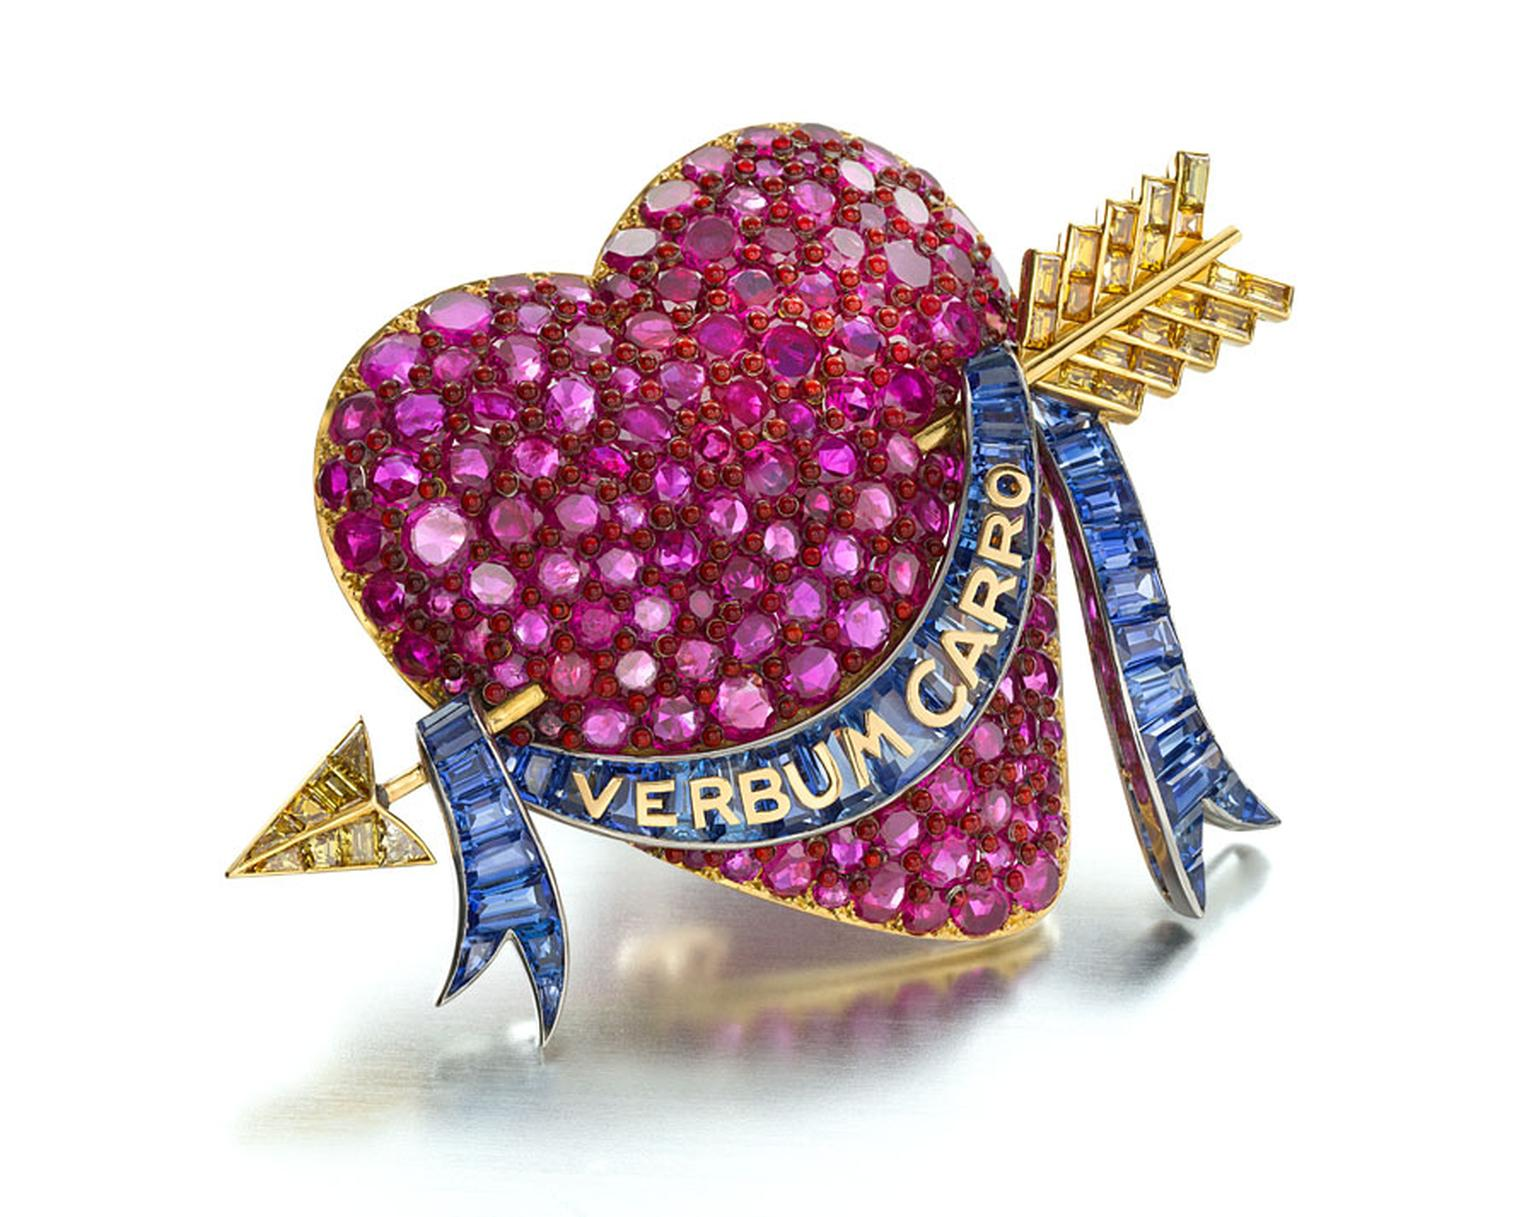 MPL-2013-Siegelson-ruby-sapphire-yellow-diamond-and-enamel-heart-brooch-by-paul-flato-new-york-circa-1938.jpg